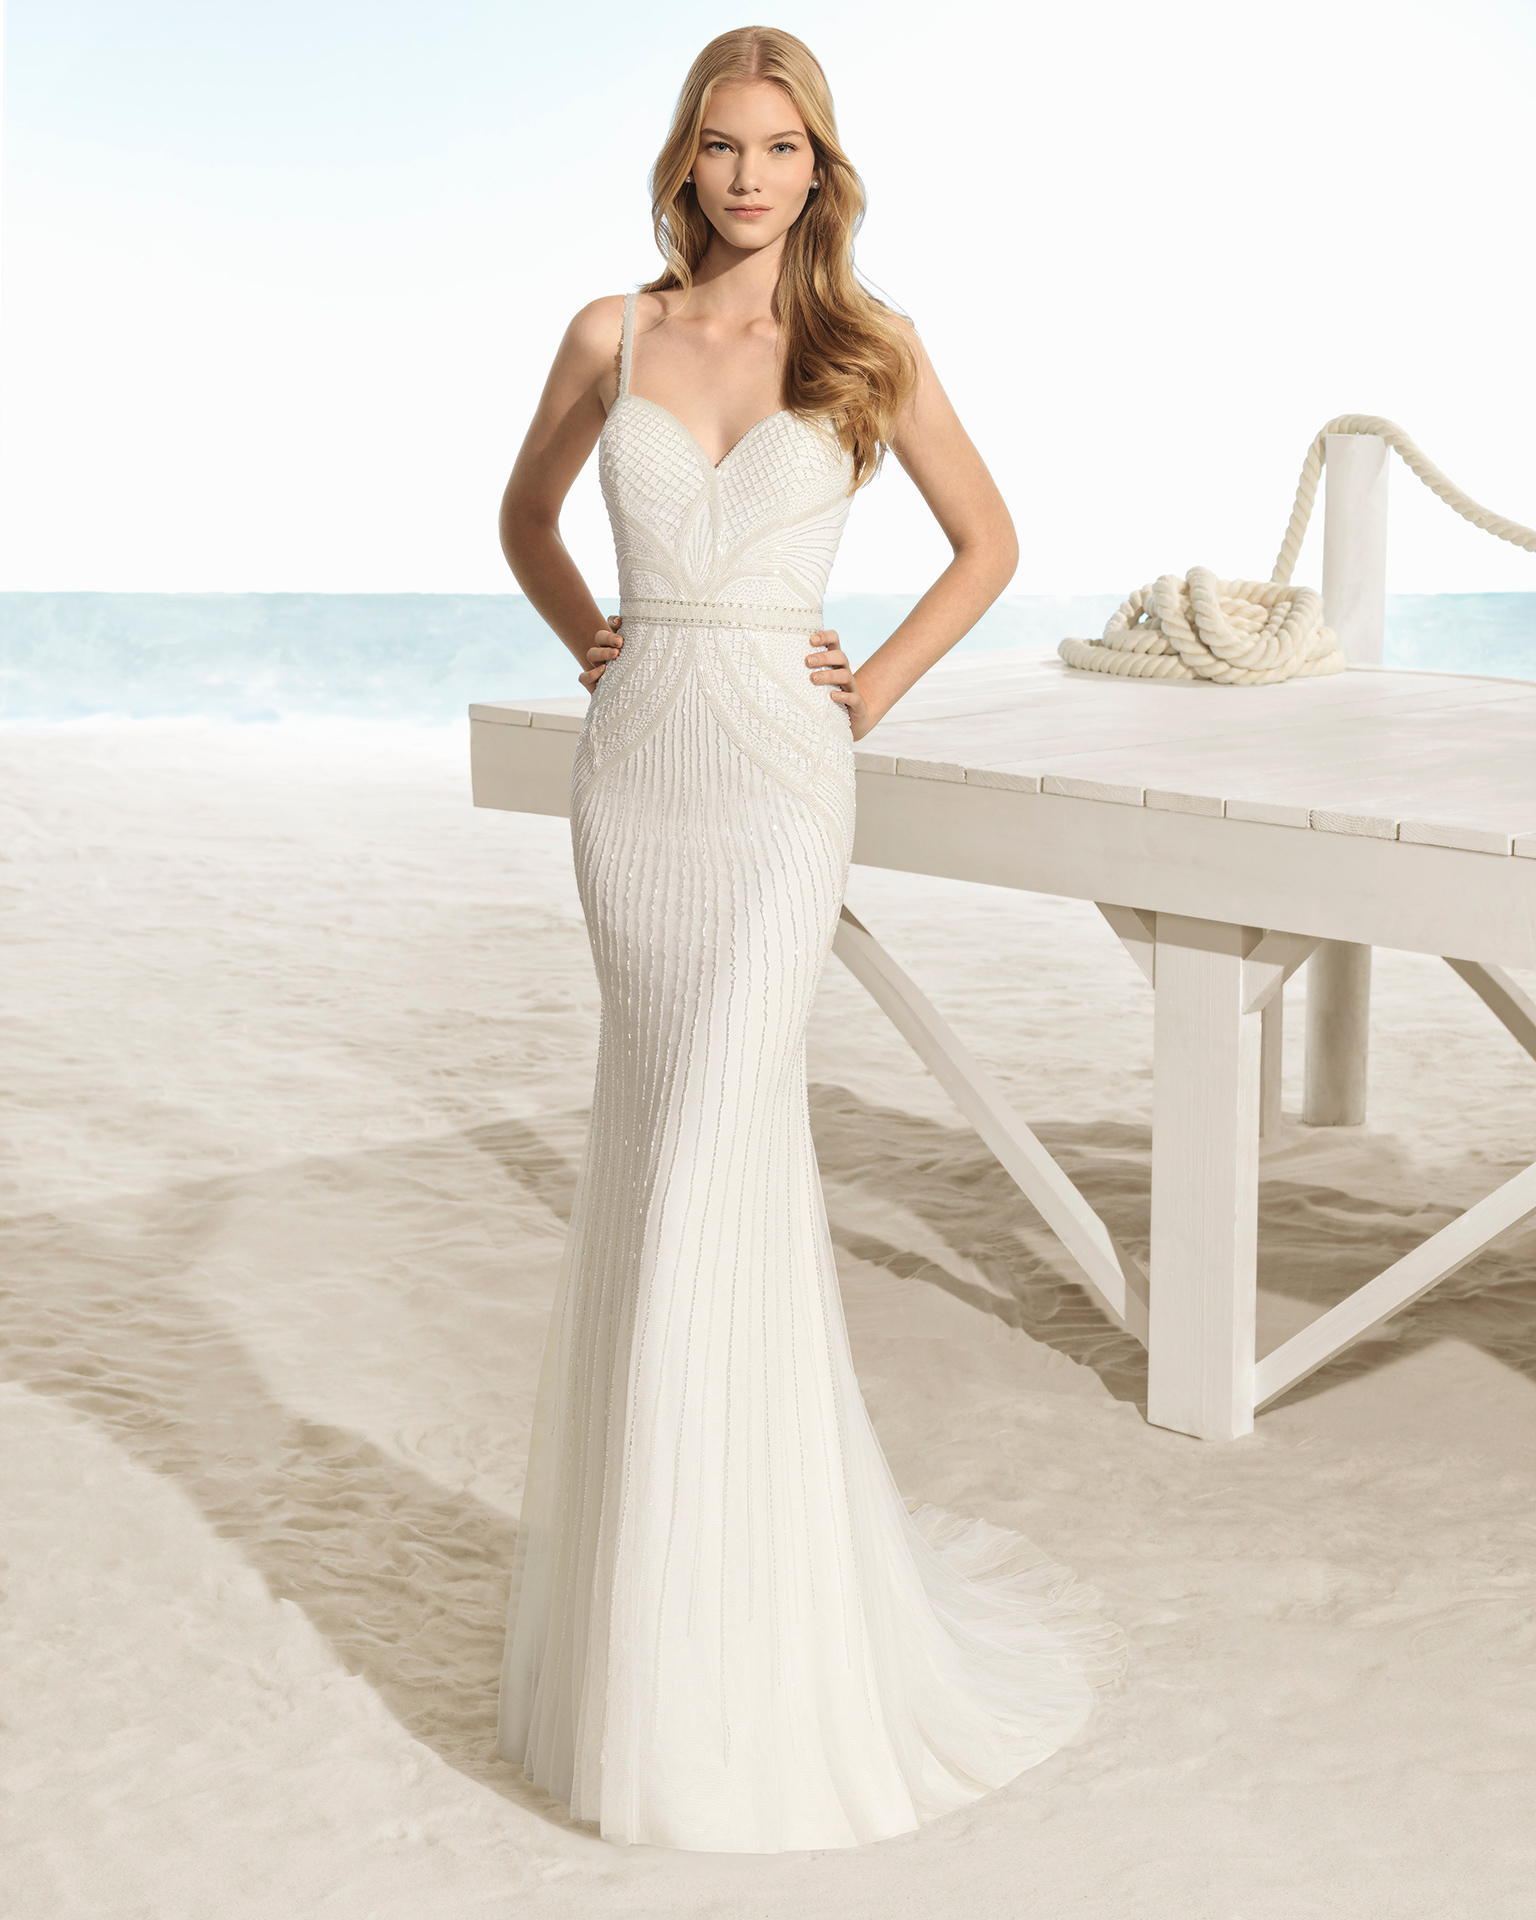 Boho-style beaded wedding dress with sweetheart neckline and V-back, in natural and natural/silver.